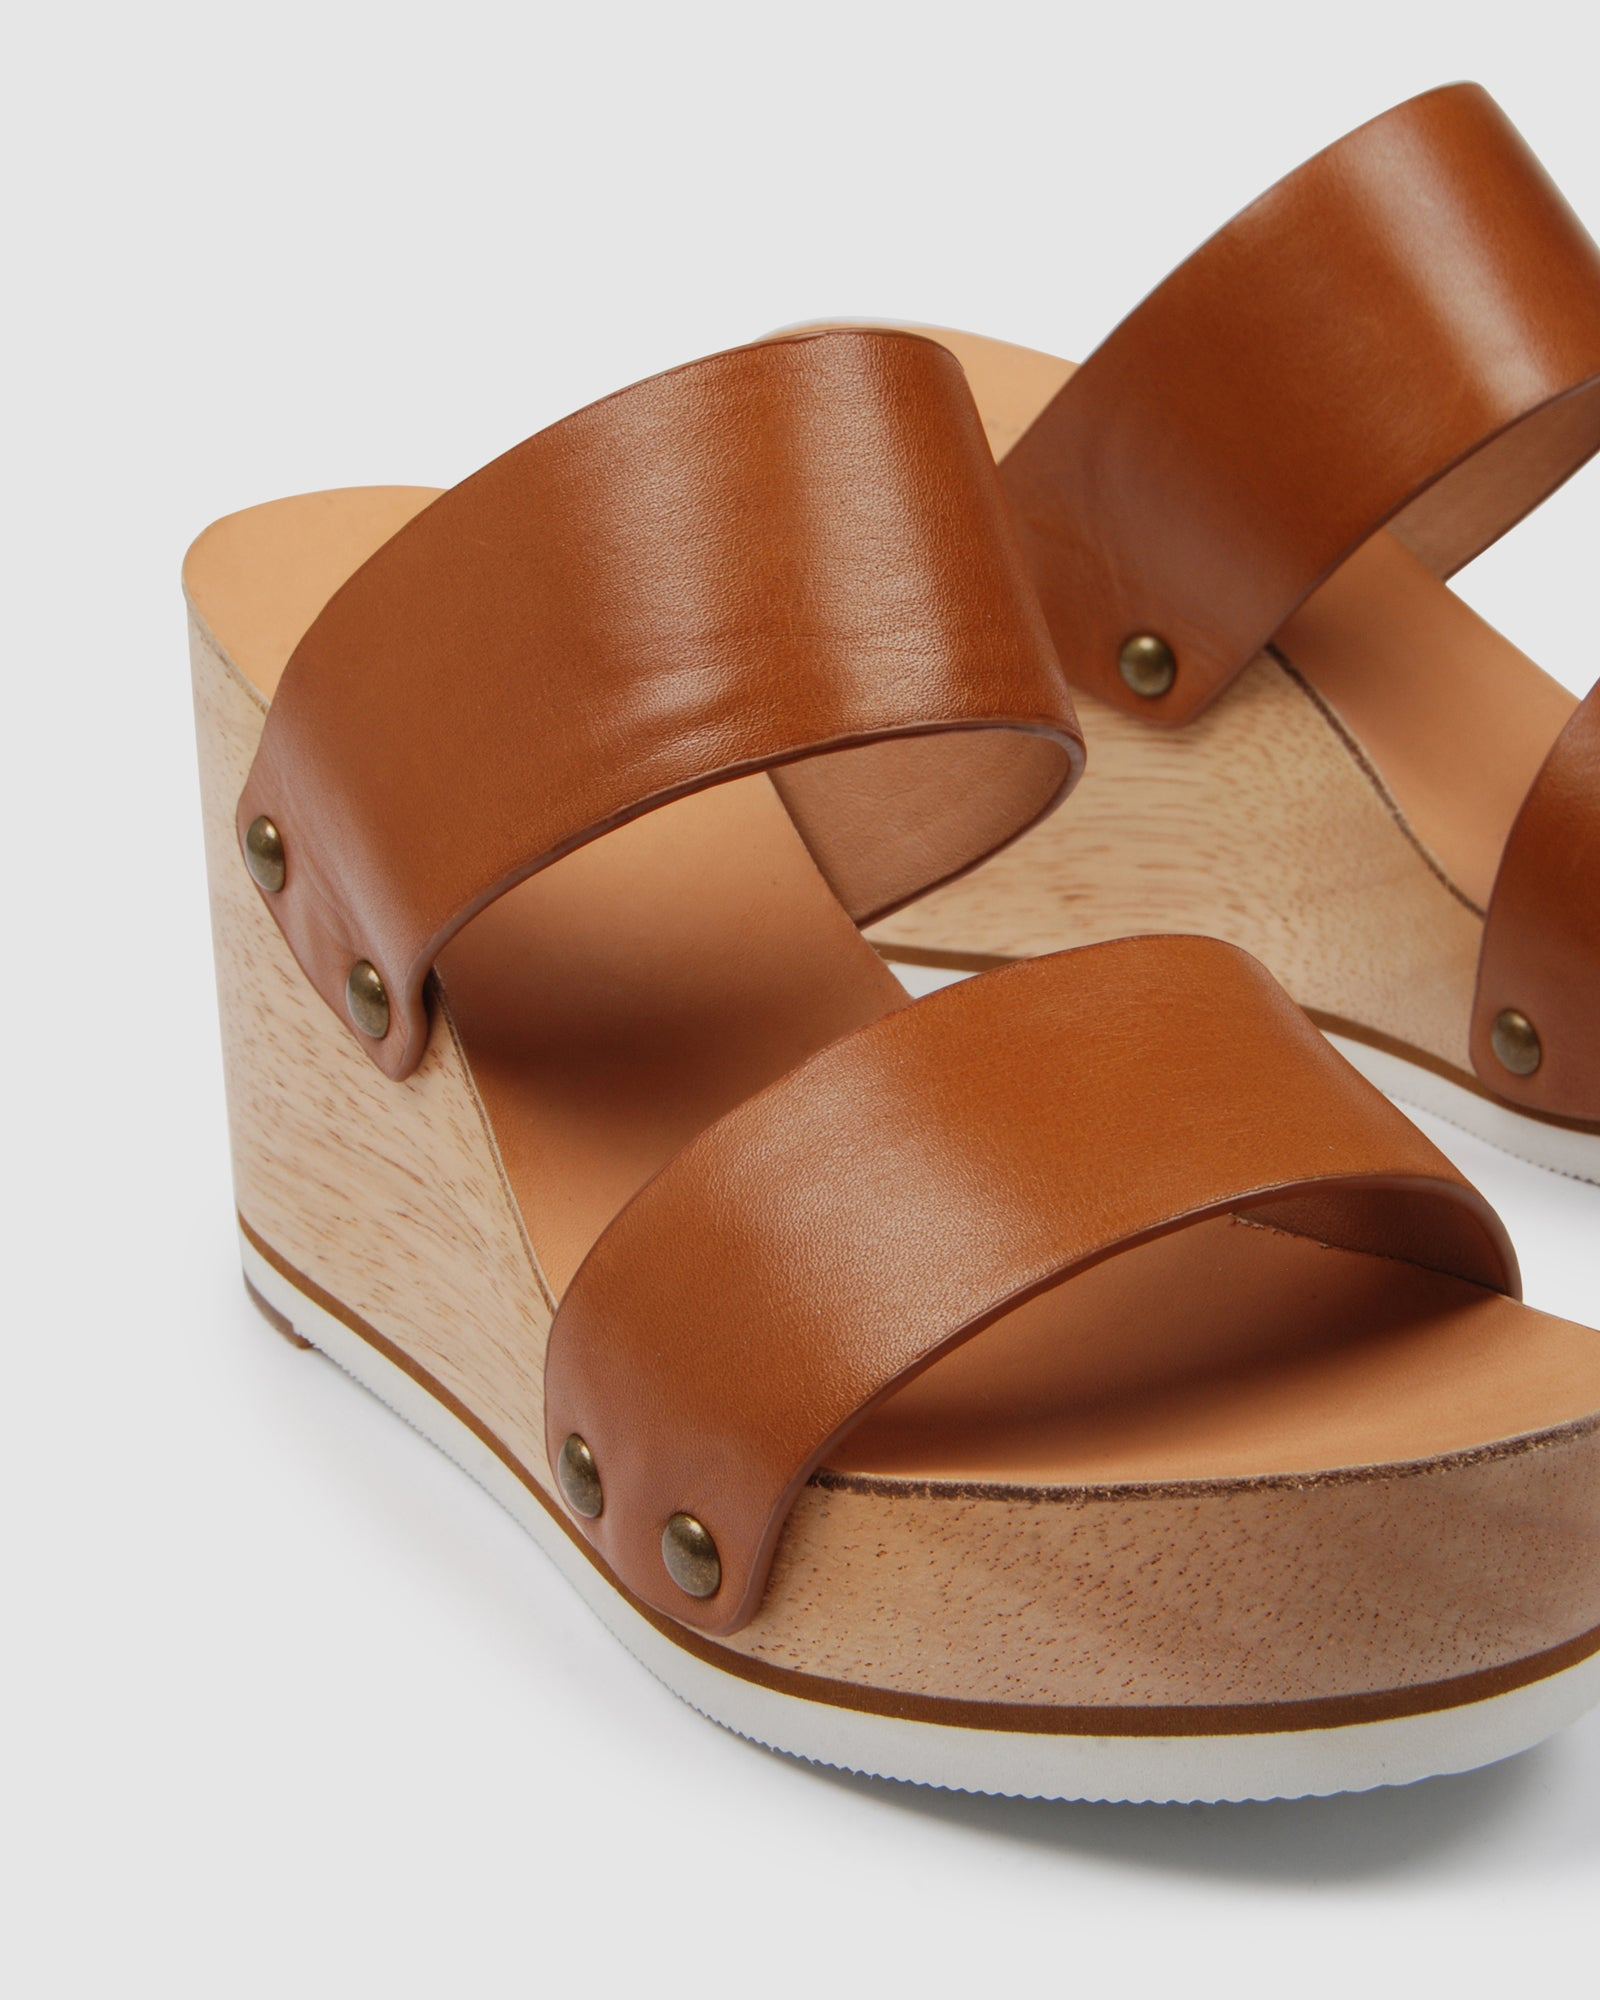 MIRA HIGH HEEL SANDALS TAN LEATHER